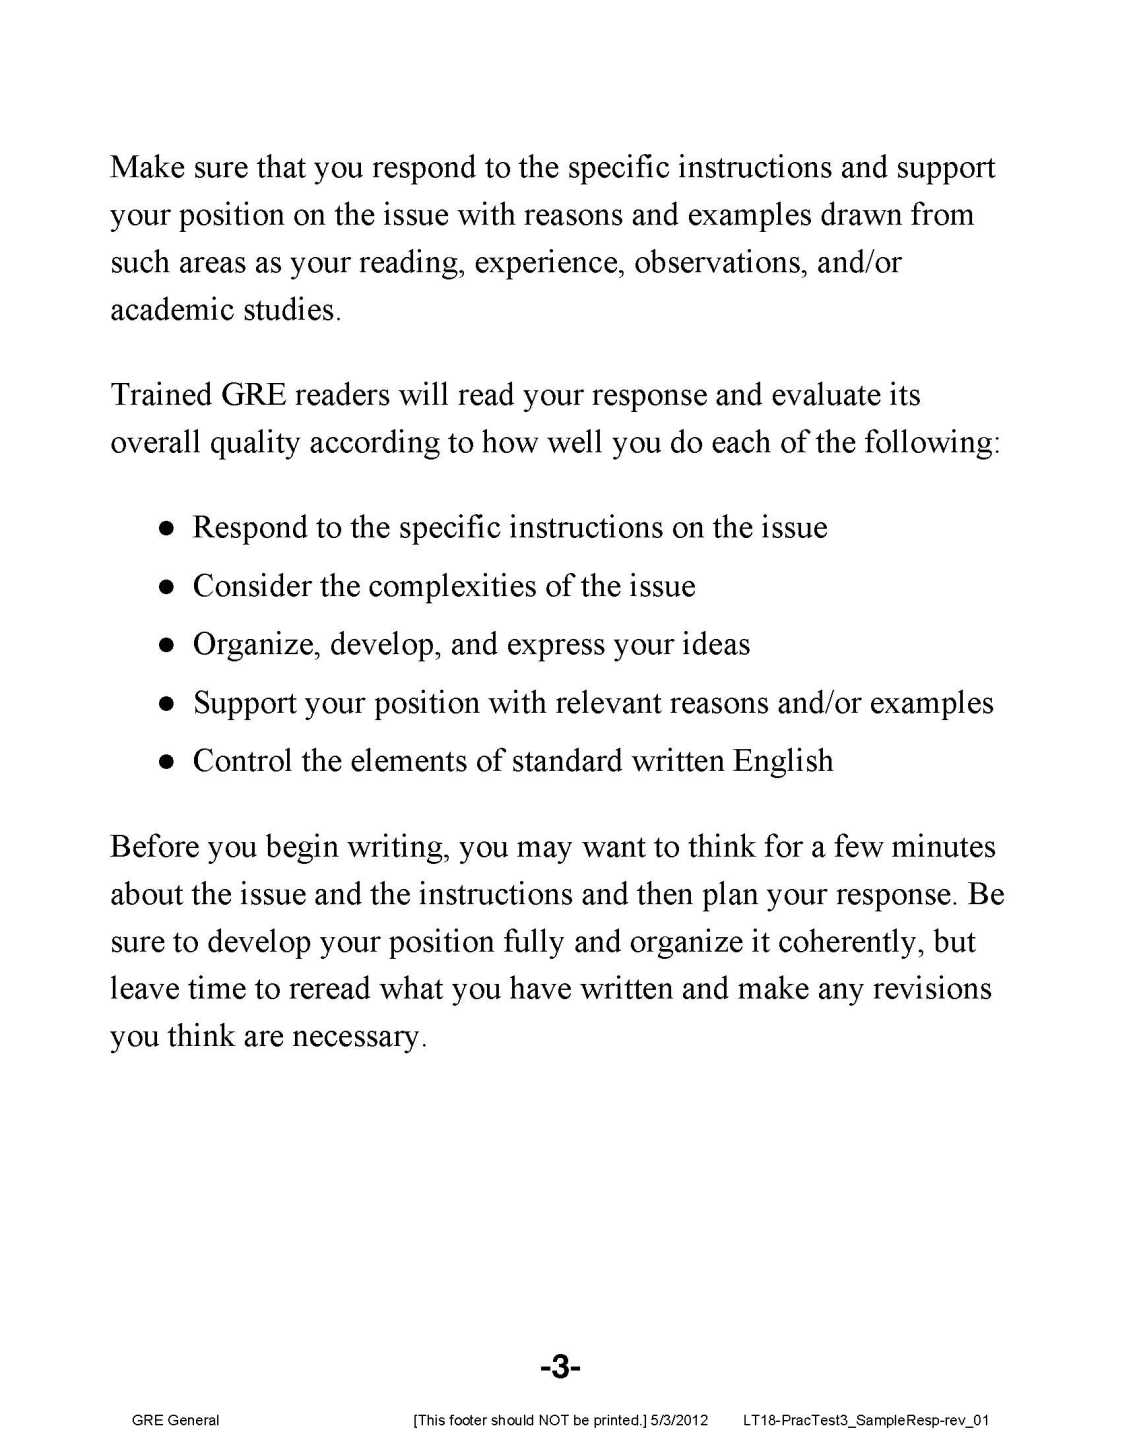 gre analytical writing sample -2-the graduate record examinations® practice general test #3 analytical writing sample essays with reader commentaries the analytical writing portion of the gre.